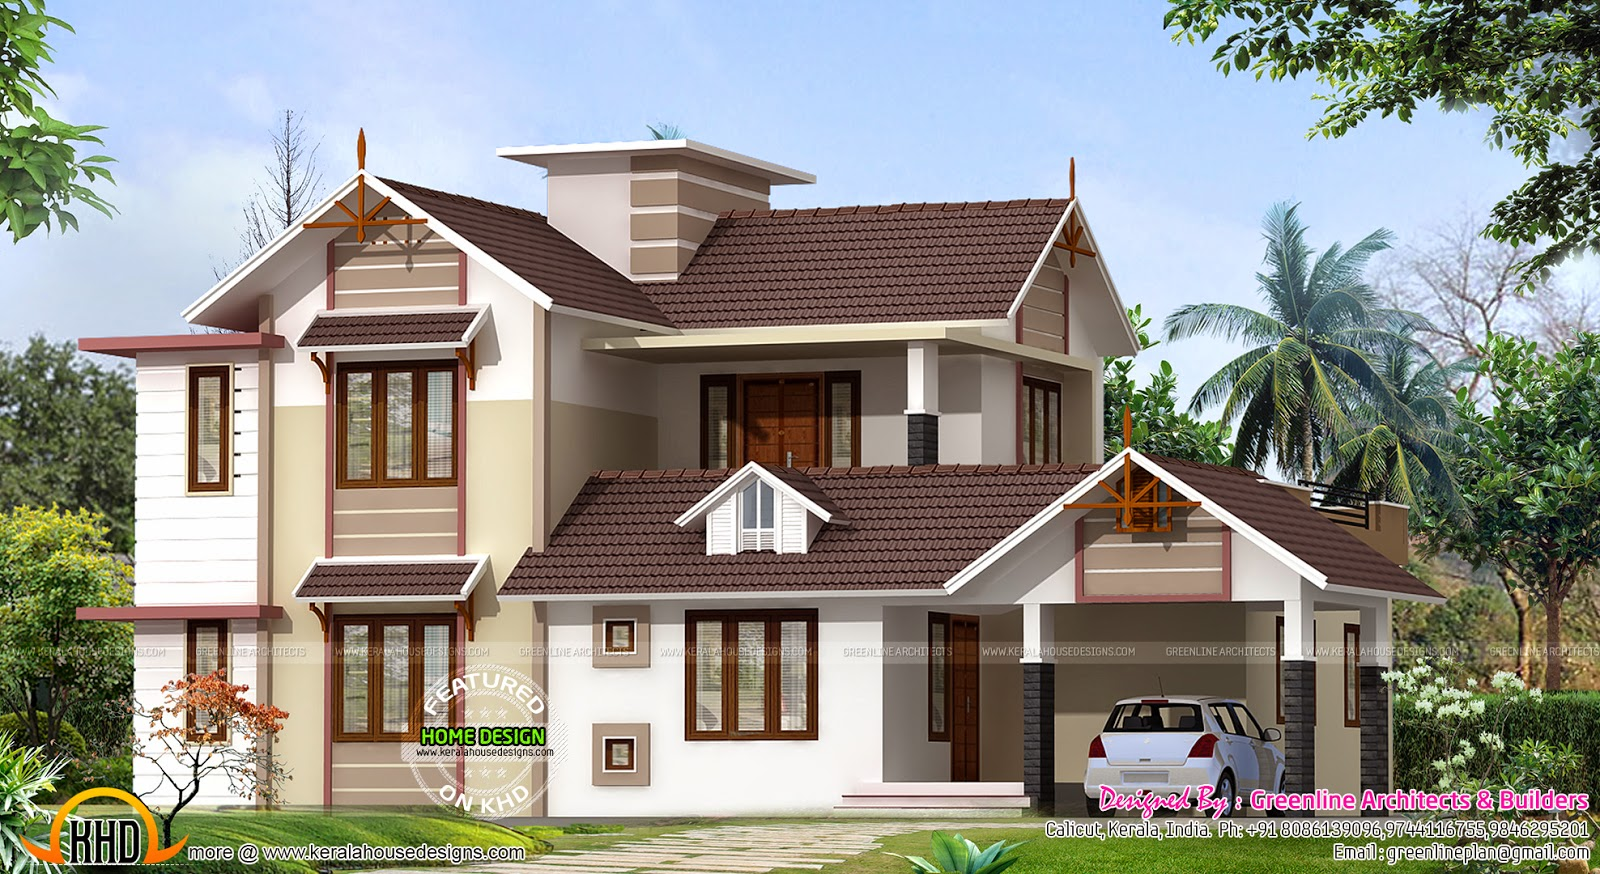 2400 sq ft new house design kerala home design and floor for New house design